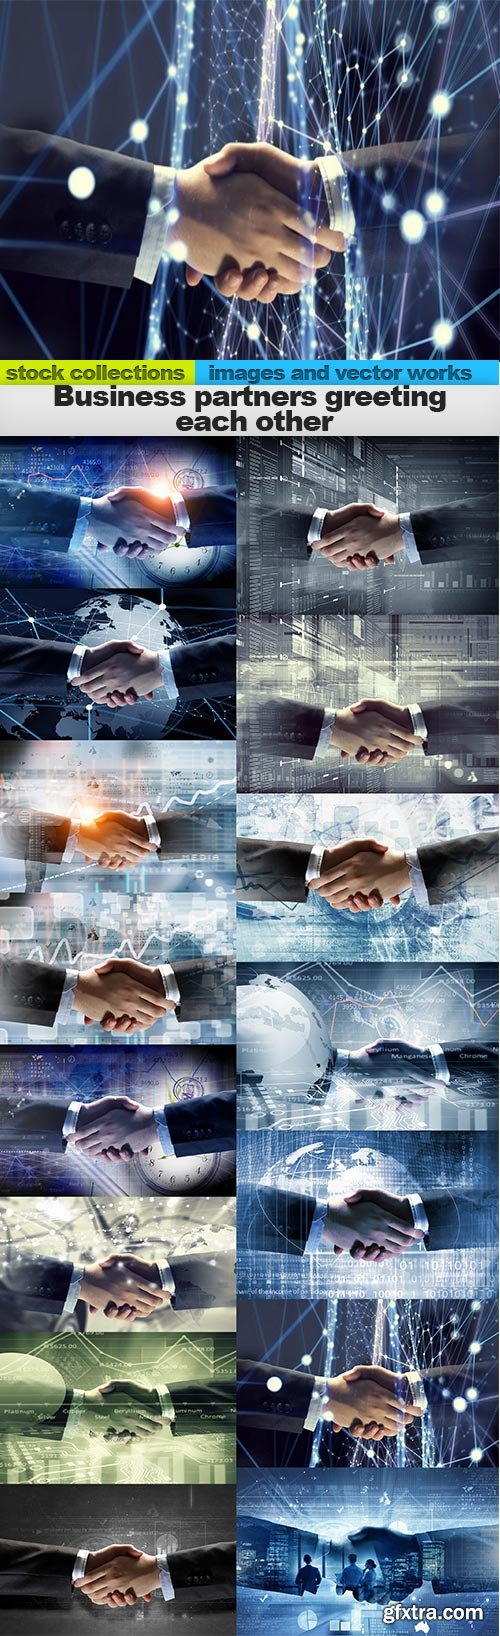 Business partners greeting each other, 15 x UHQ JPEG